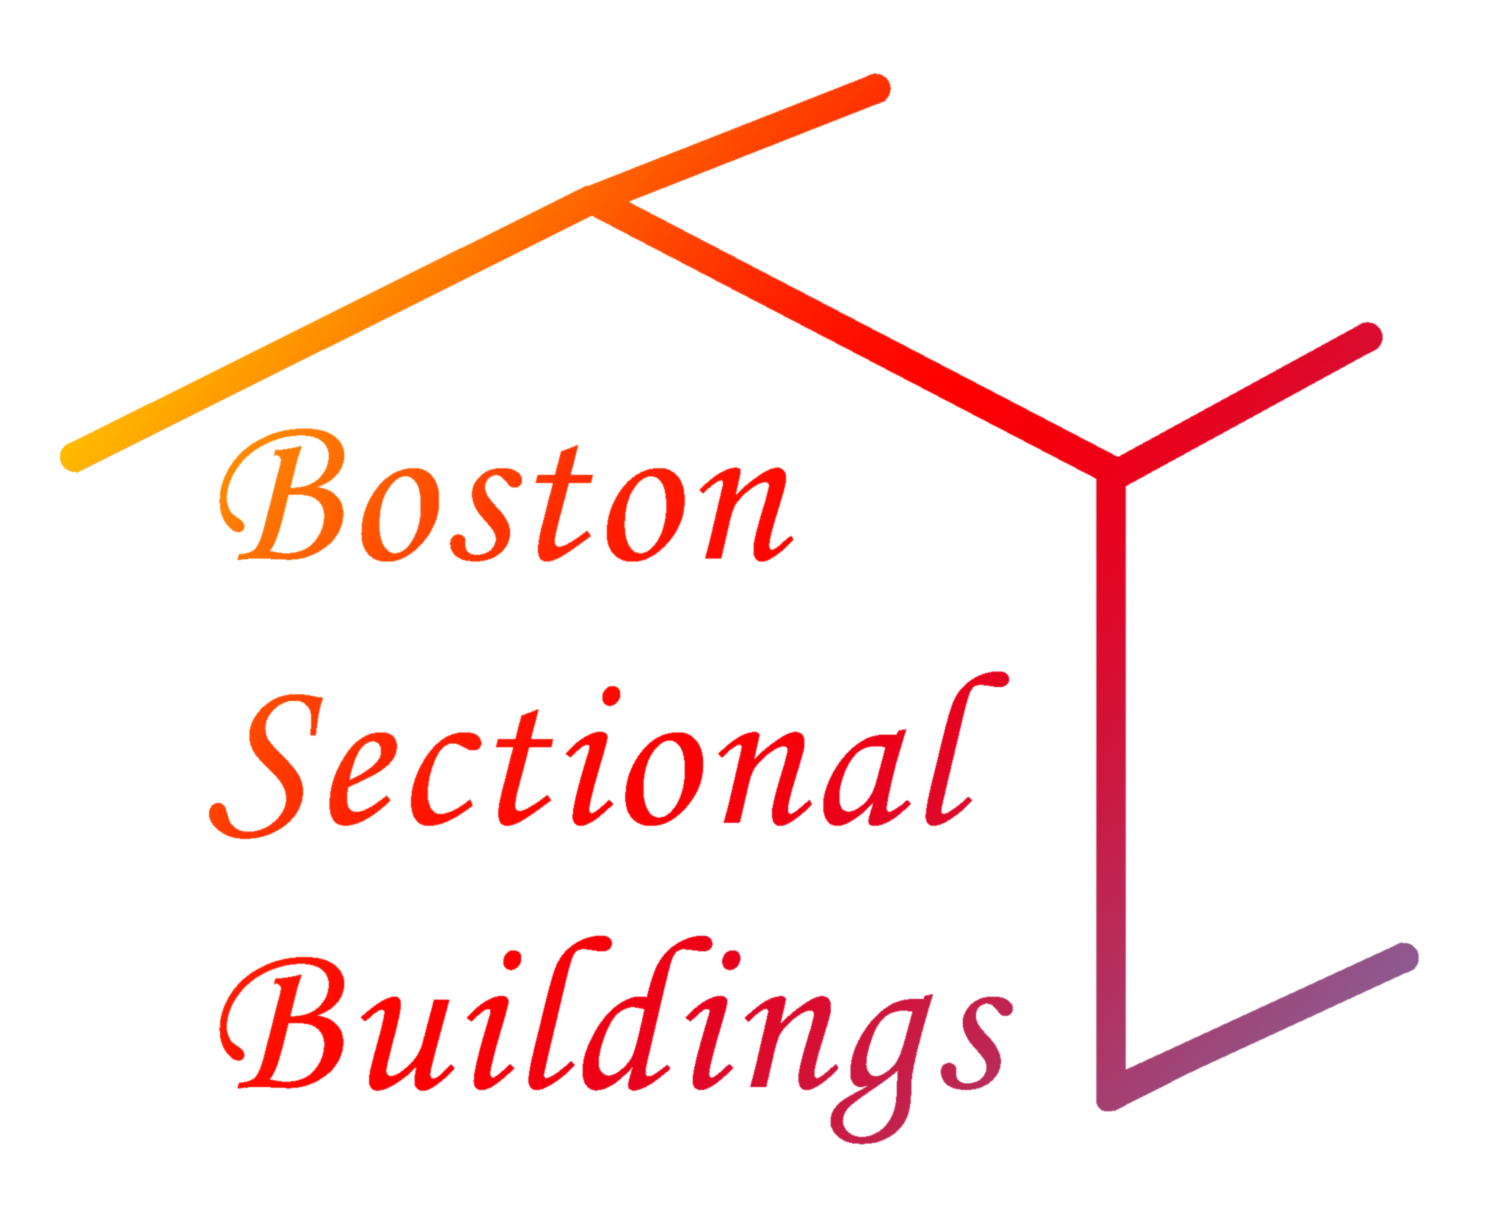 Boston Sectional Buildings